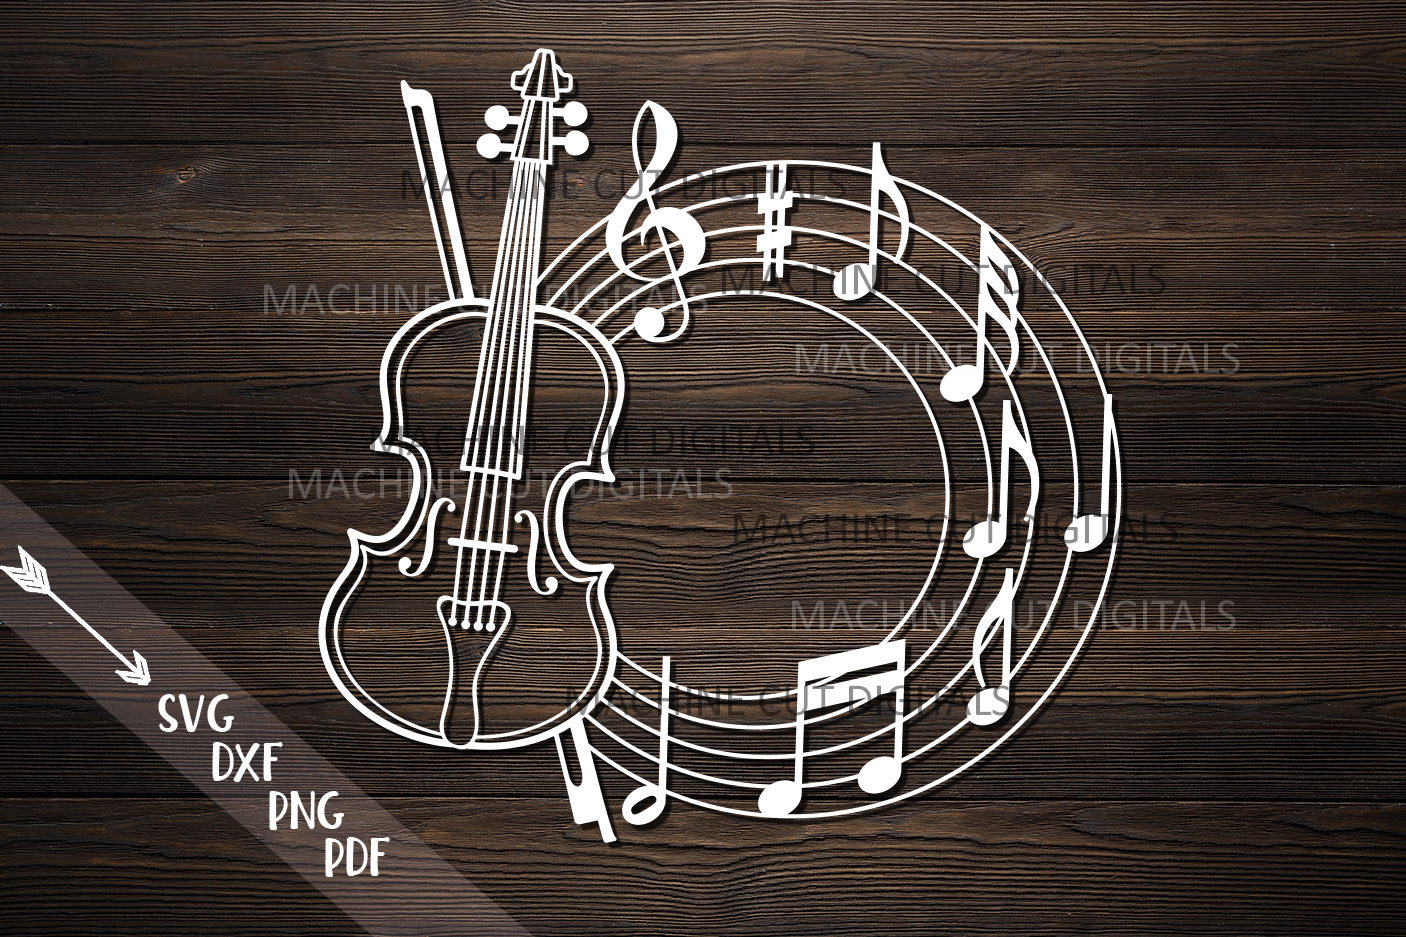 Violin frame for name with musical notes music classes svg example image 1